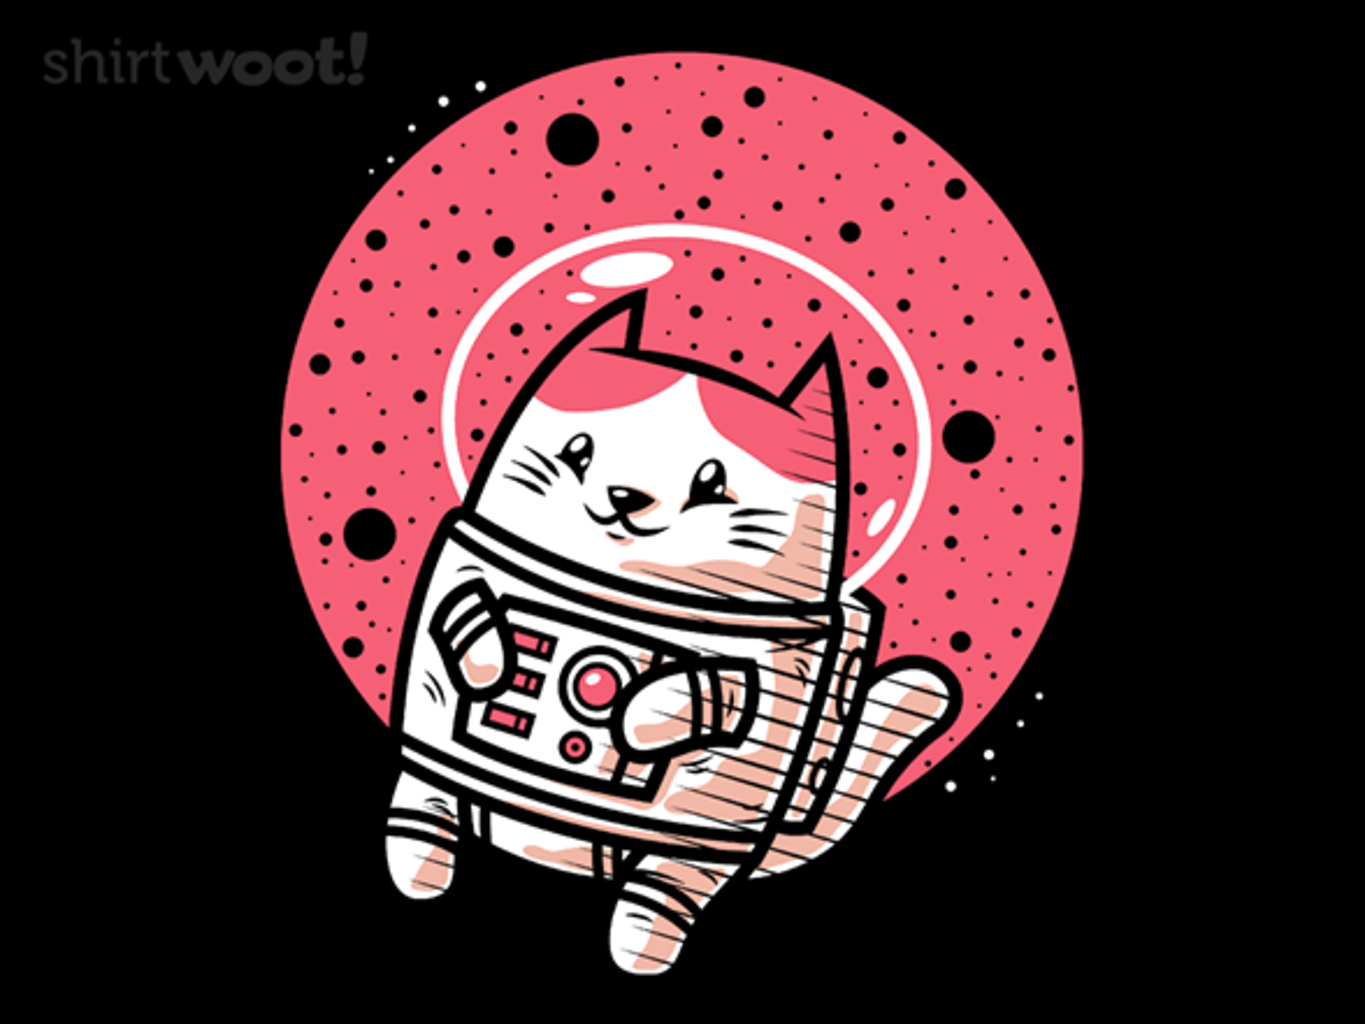 Woot!: Space Kitty